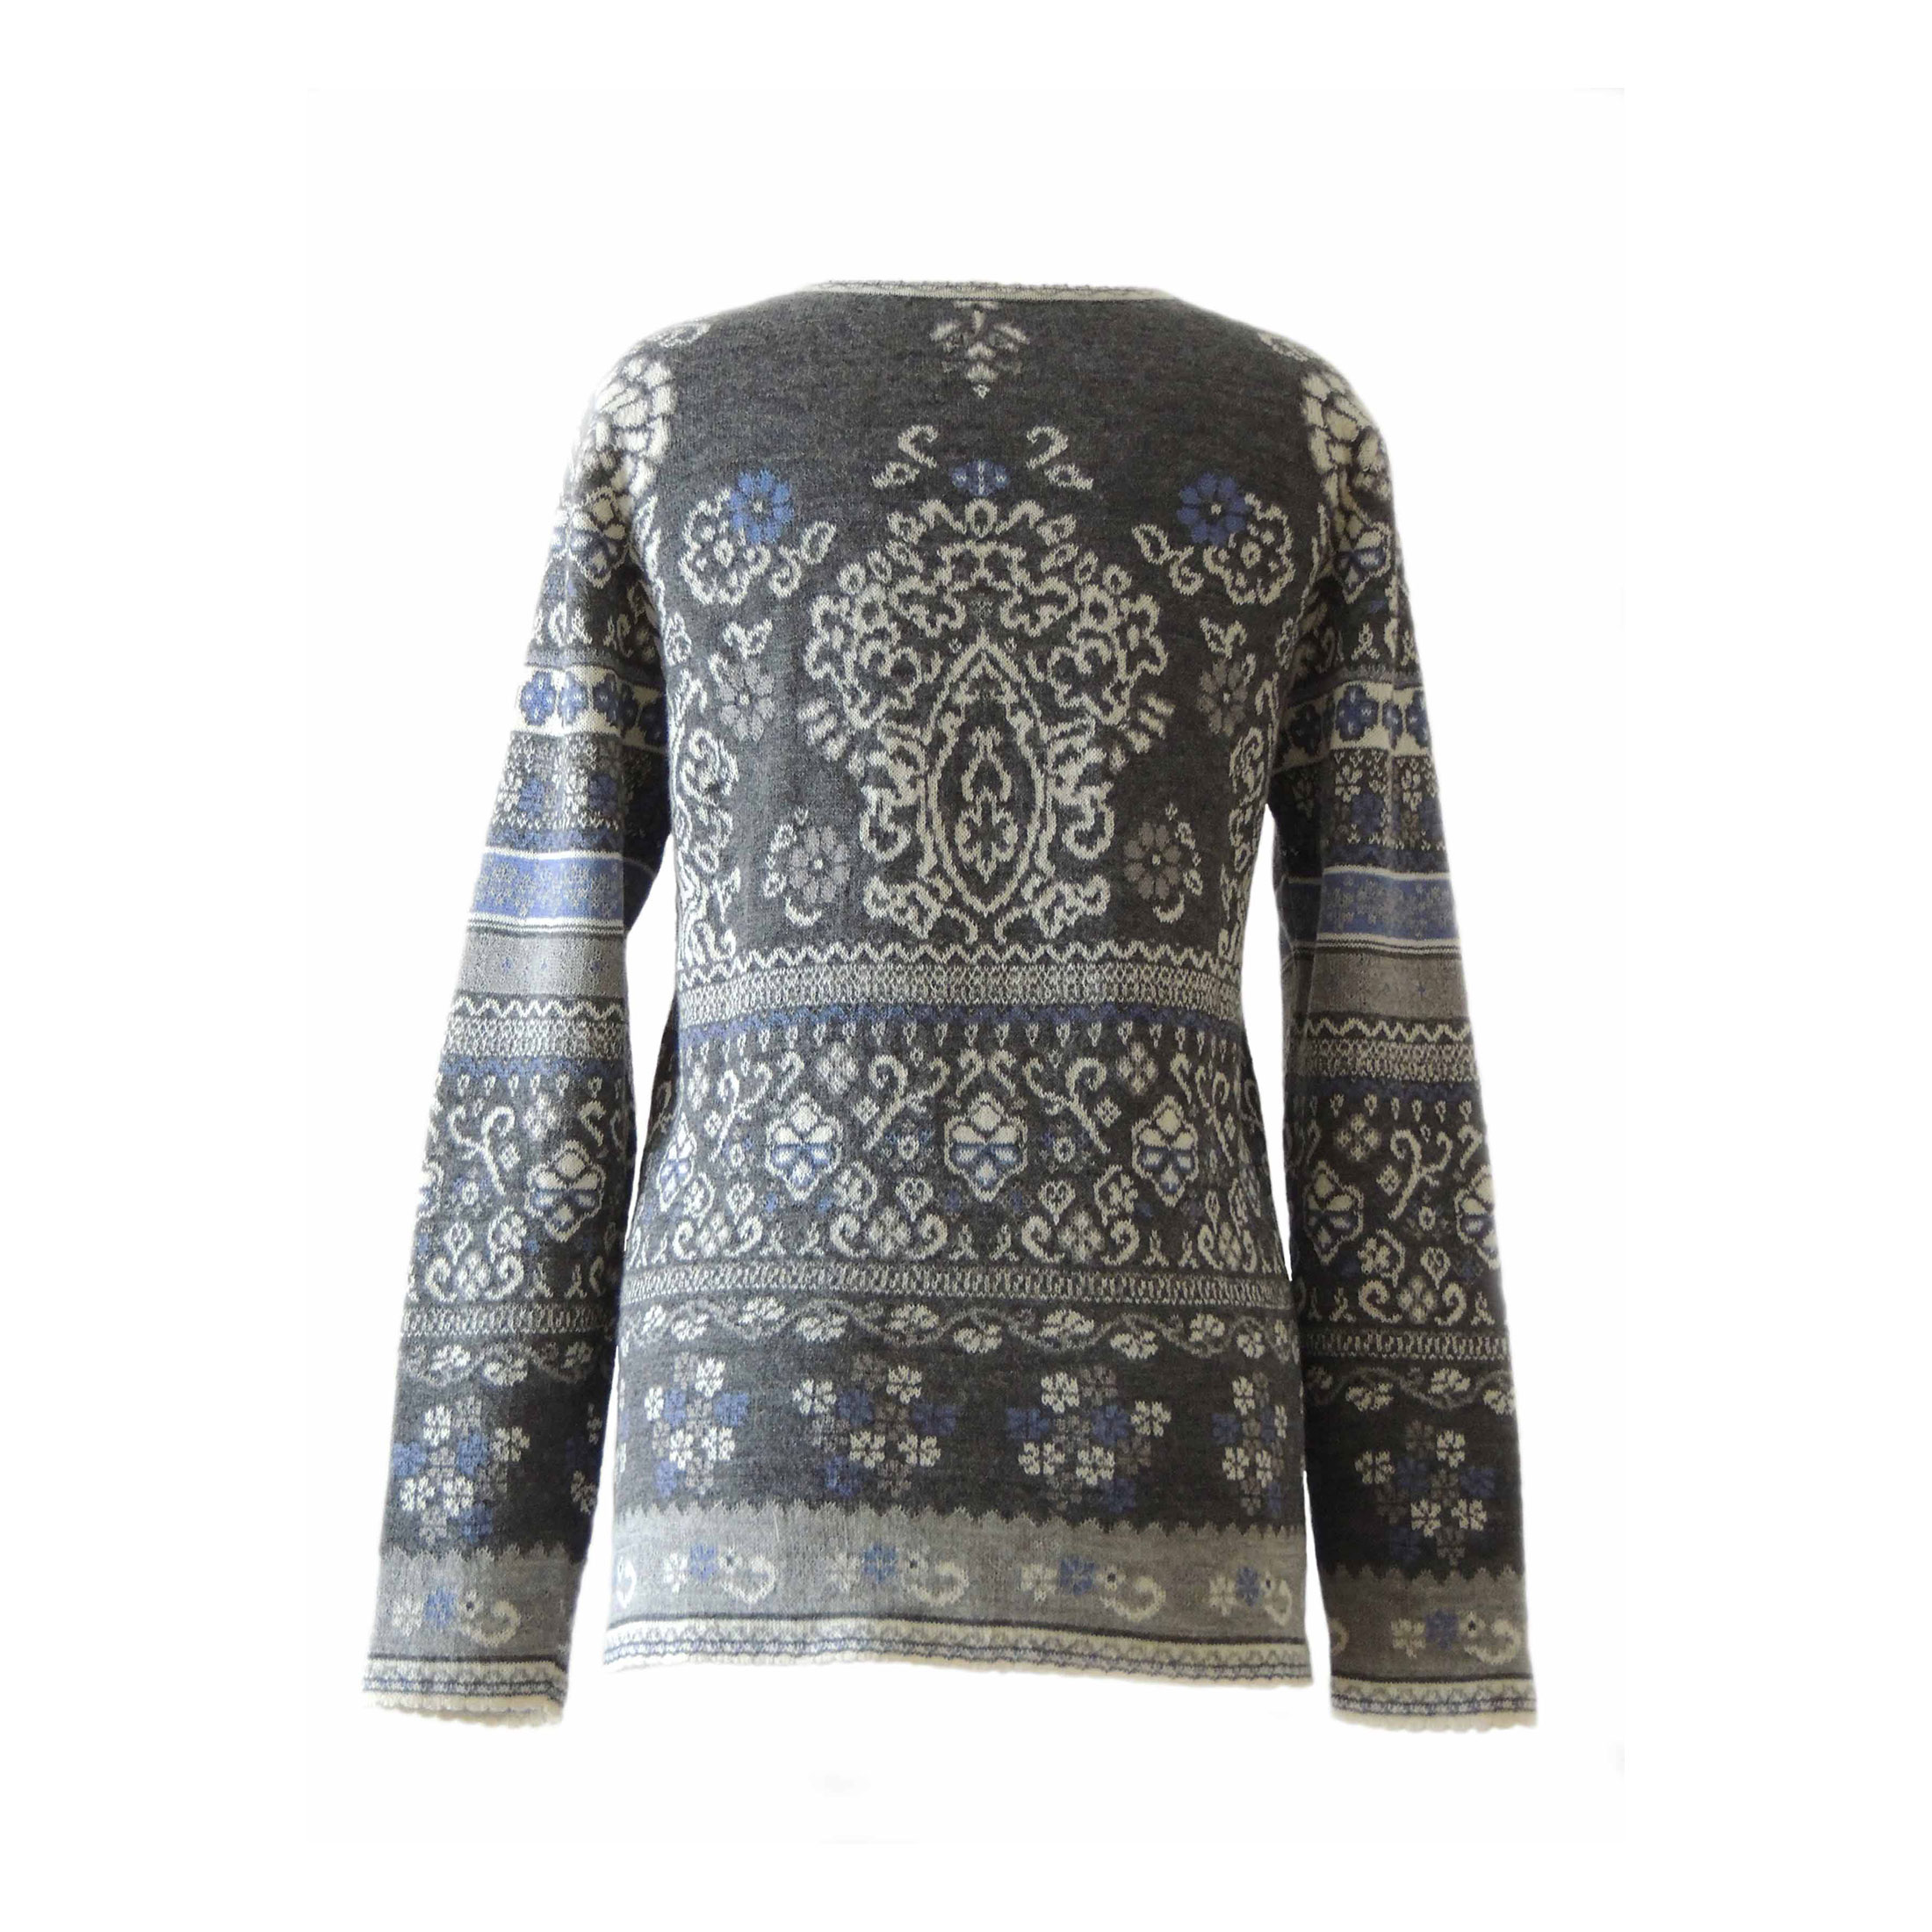 PFL Knitwear Cardigan Lucy gray creme blue with print in jacquard knit, crew neck and mother of pearl button closure, in 100% baby alpaca wool